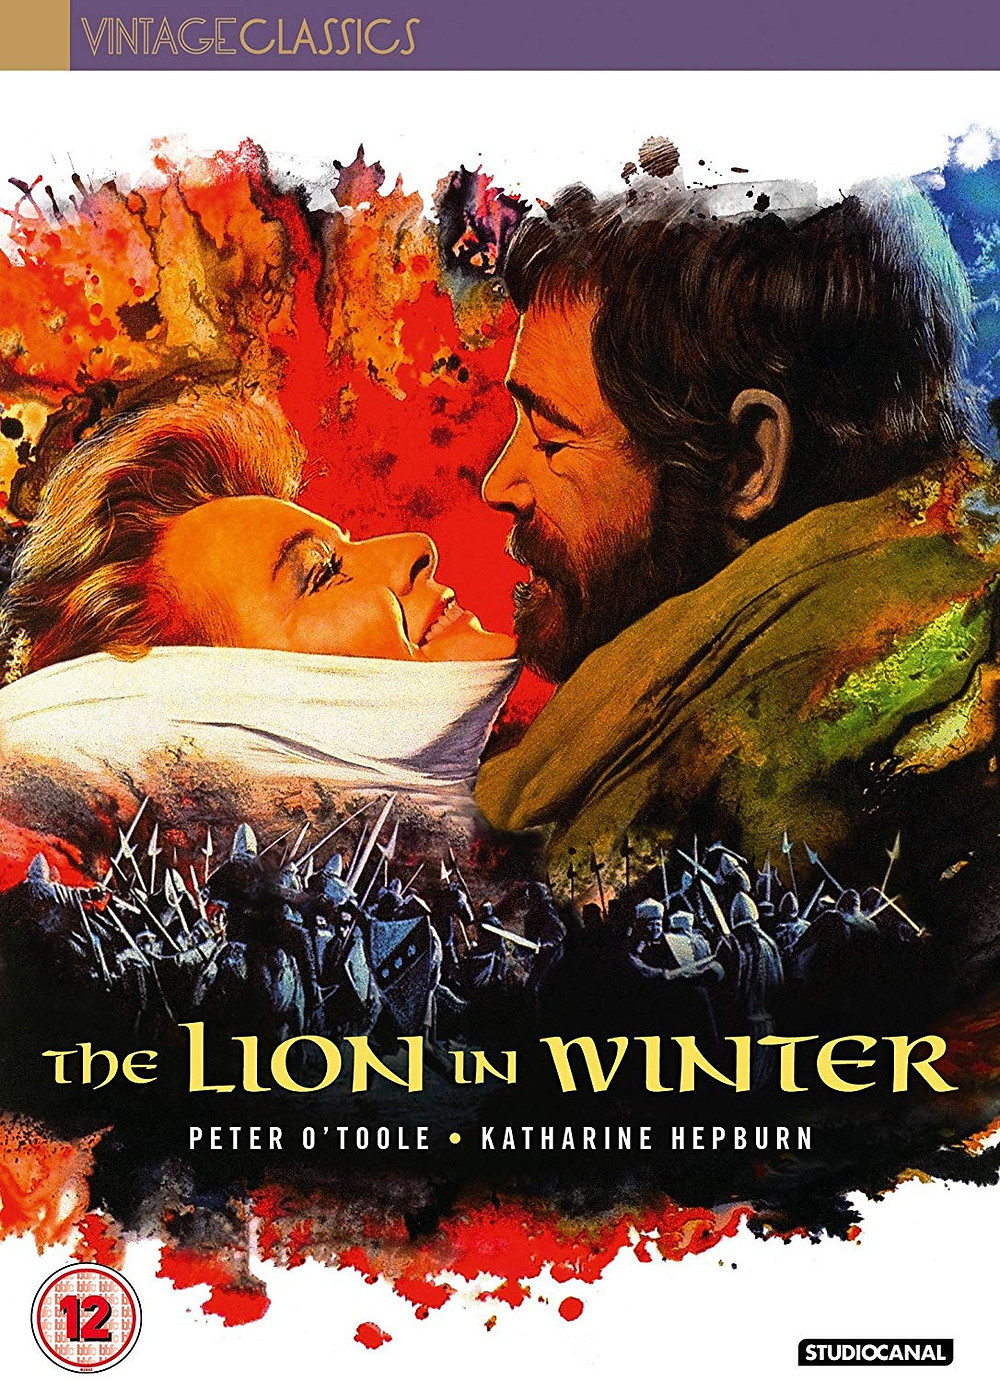 DVD - The Lion in Winter - England, the 12th Century. After the death of his son and heir, King Henry II (Peter O'Toole) is obsessed with finding a new successor, so summons his three remaining sons. Also summoned is his wife, the formidable Eleanor of Aquitaine (Katherine Hepburn), who he has kept imprisoned for the last ten years. As the Royal couple scheme and cajole with their sons their passions turn from tenderness to fury as they determine who should be the future King of England. Katherine Hepburn won her third of an unprecedented four Best Actress Oscars for this film, and director Anthony Harvey was also nominated. Also starring Timothy Dalton and Anthony Hopkins.